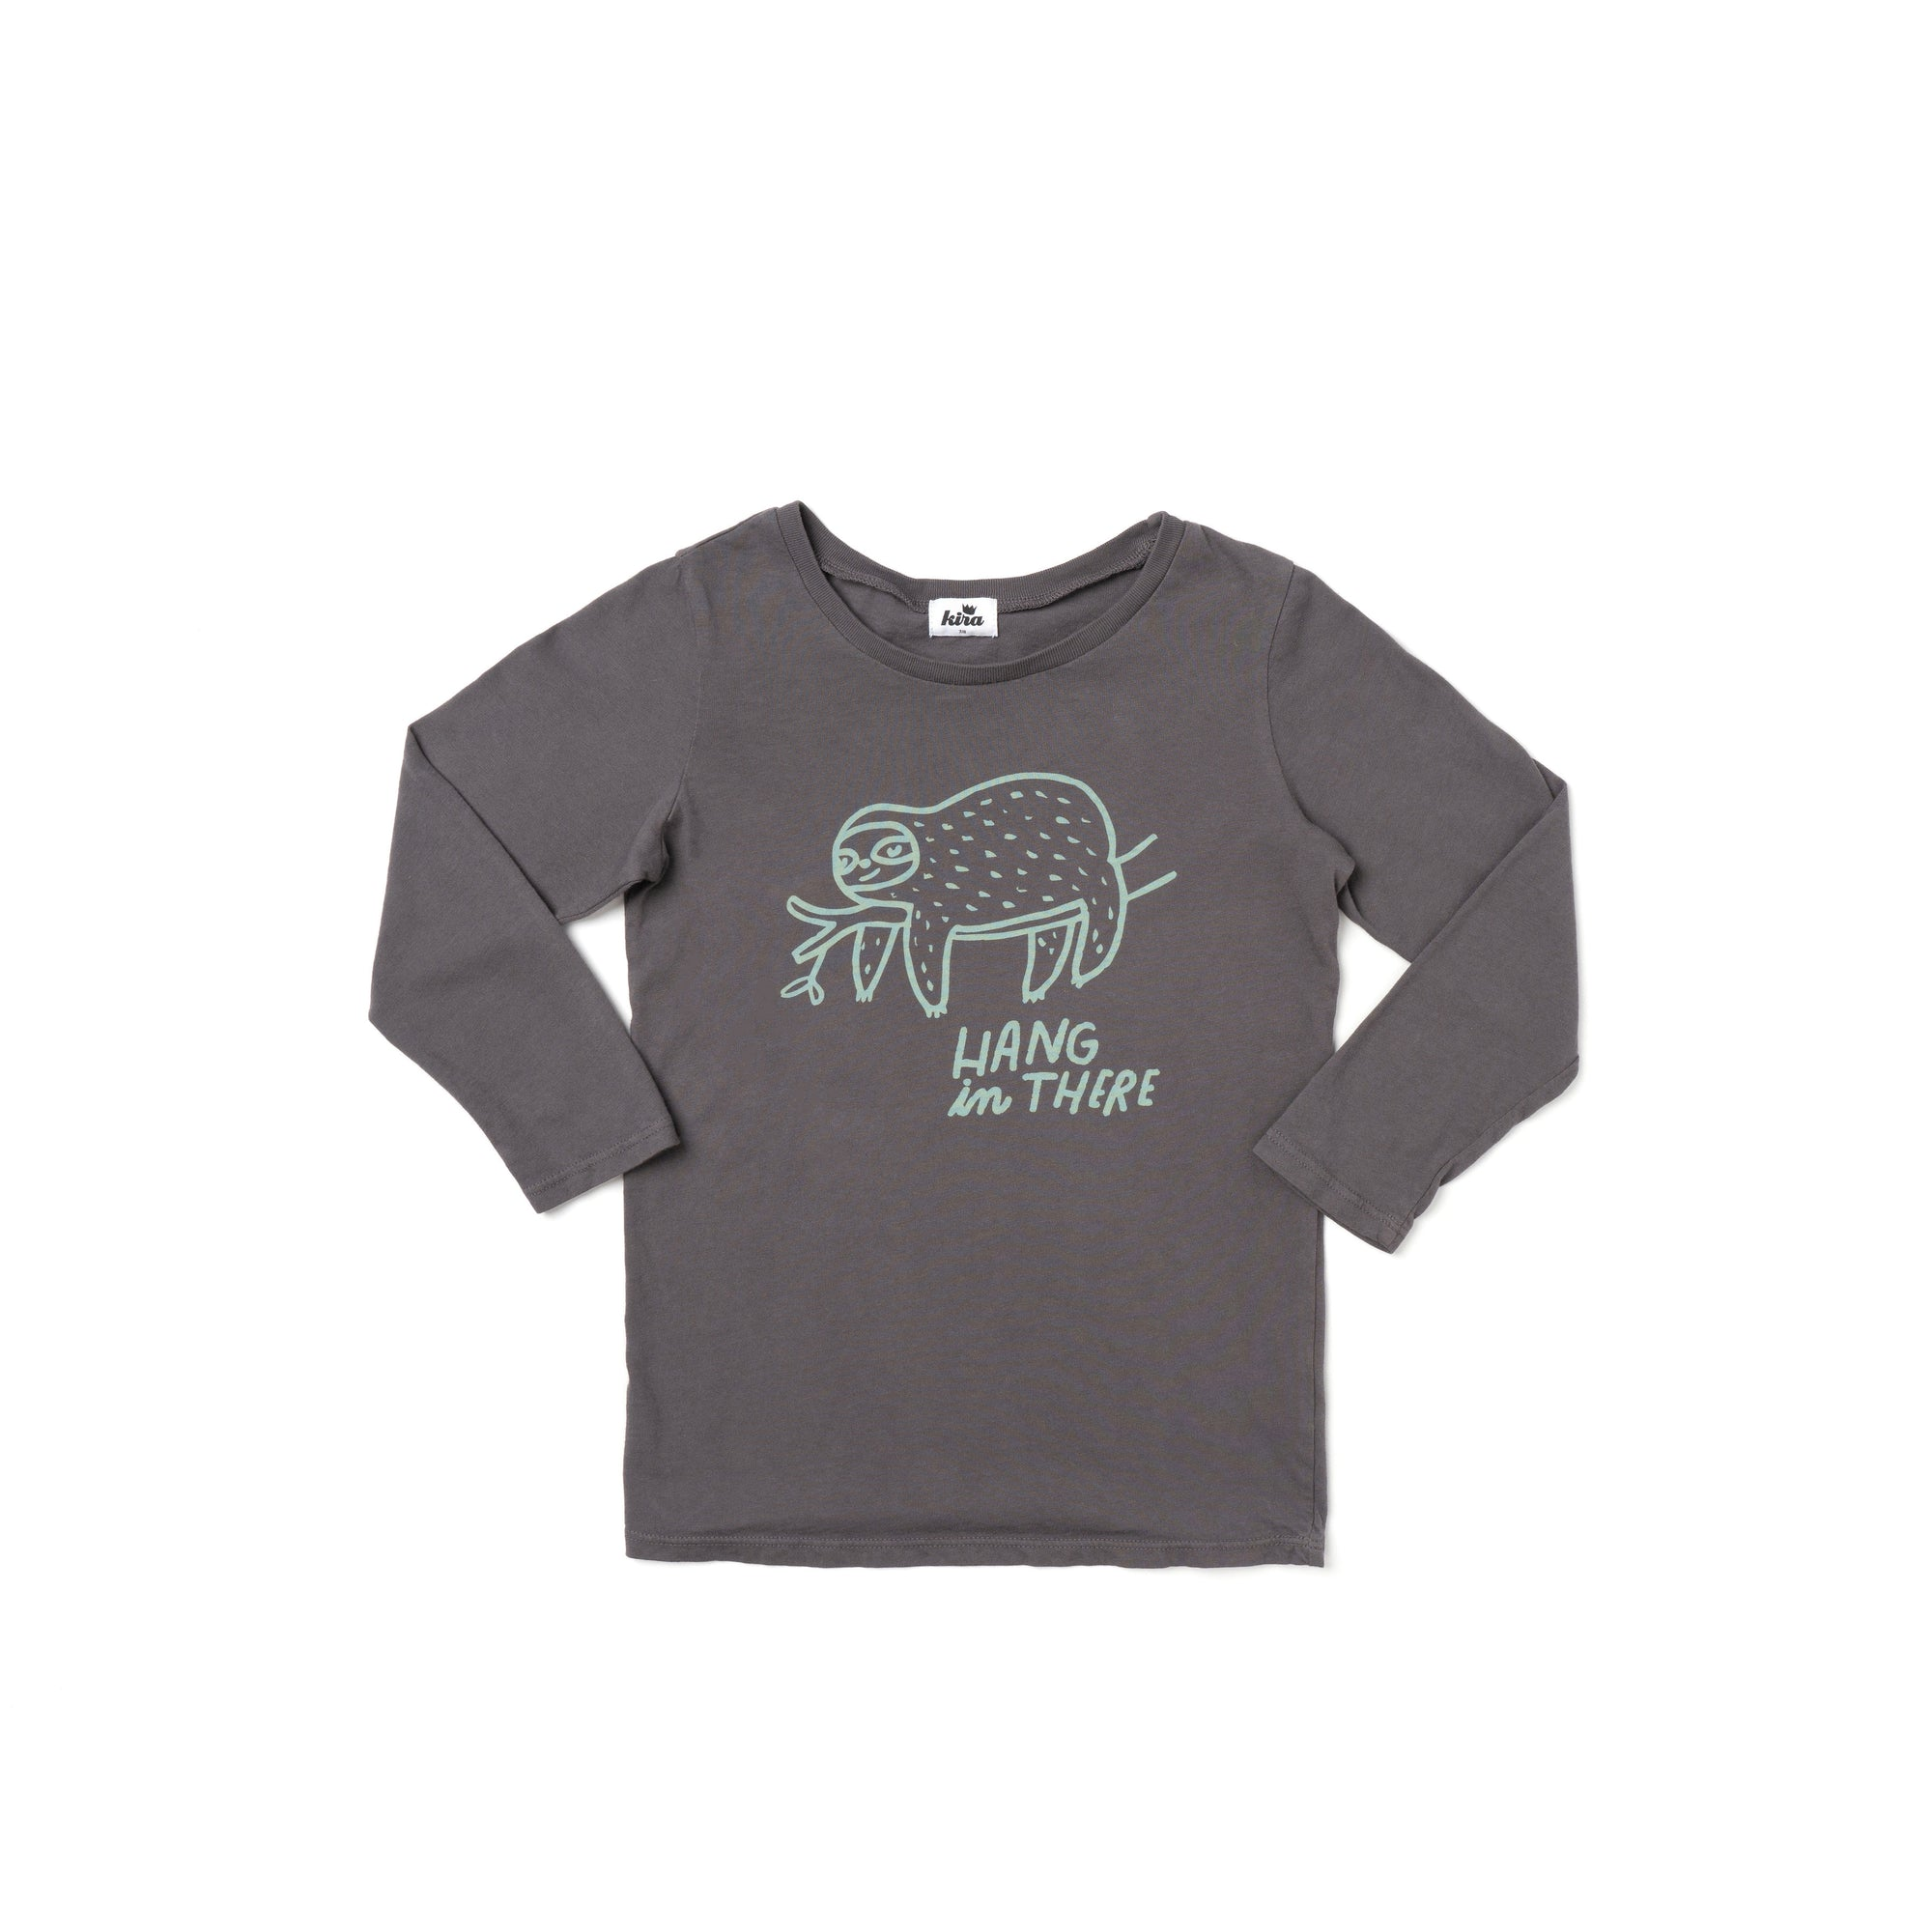 Hang in There Graphic T-shirt, Long Sleeve, Slate